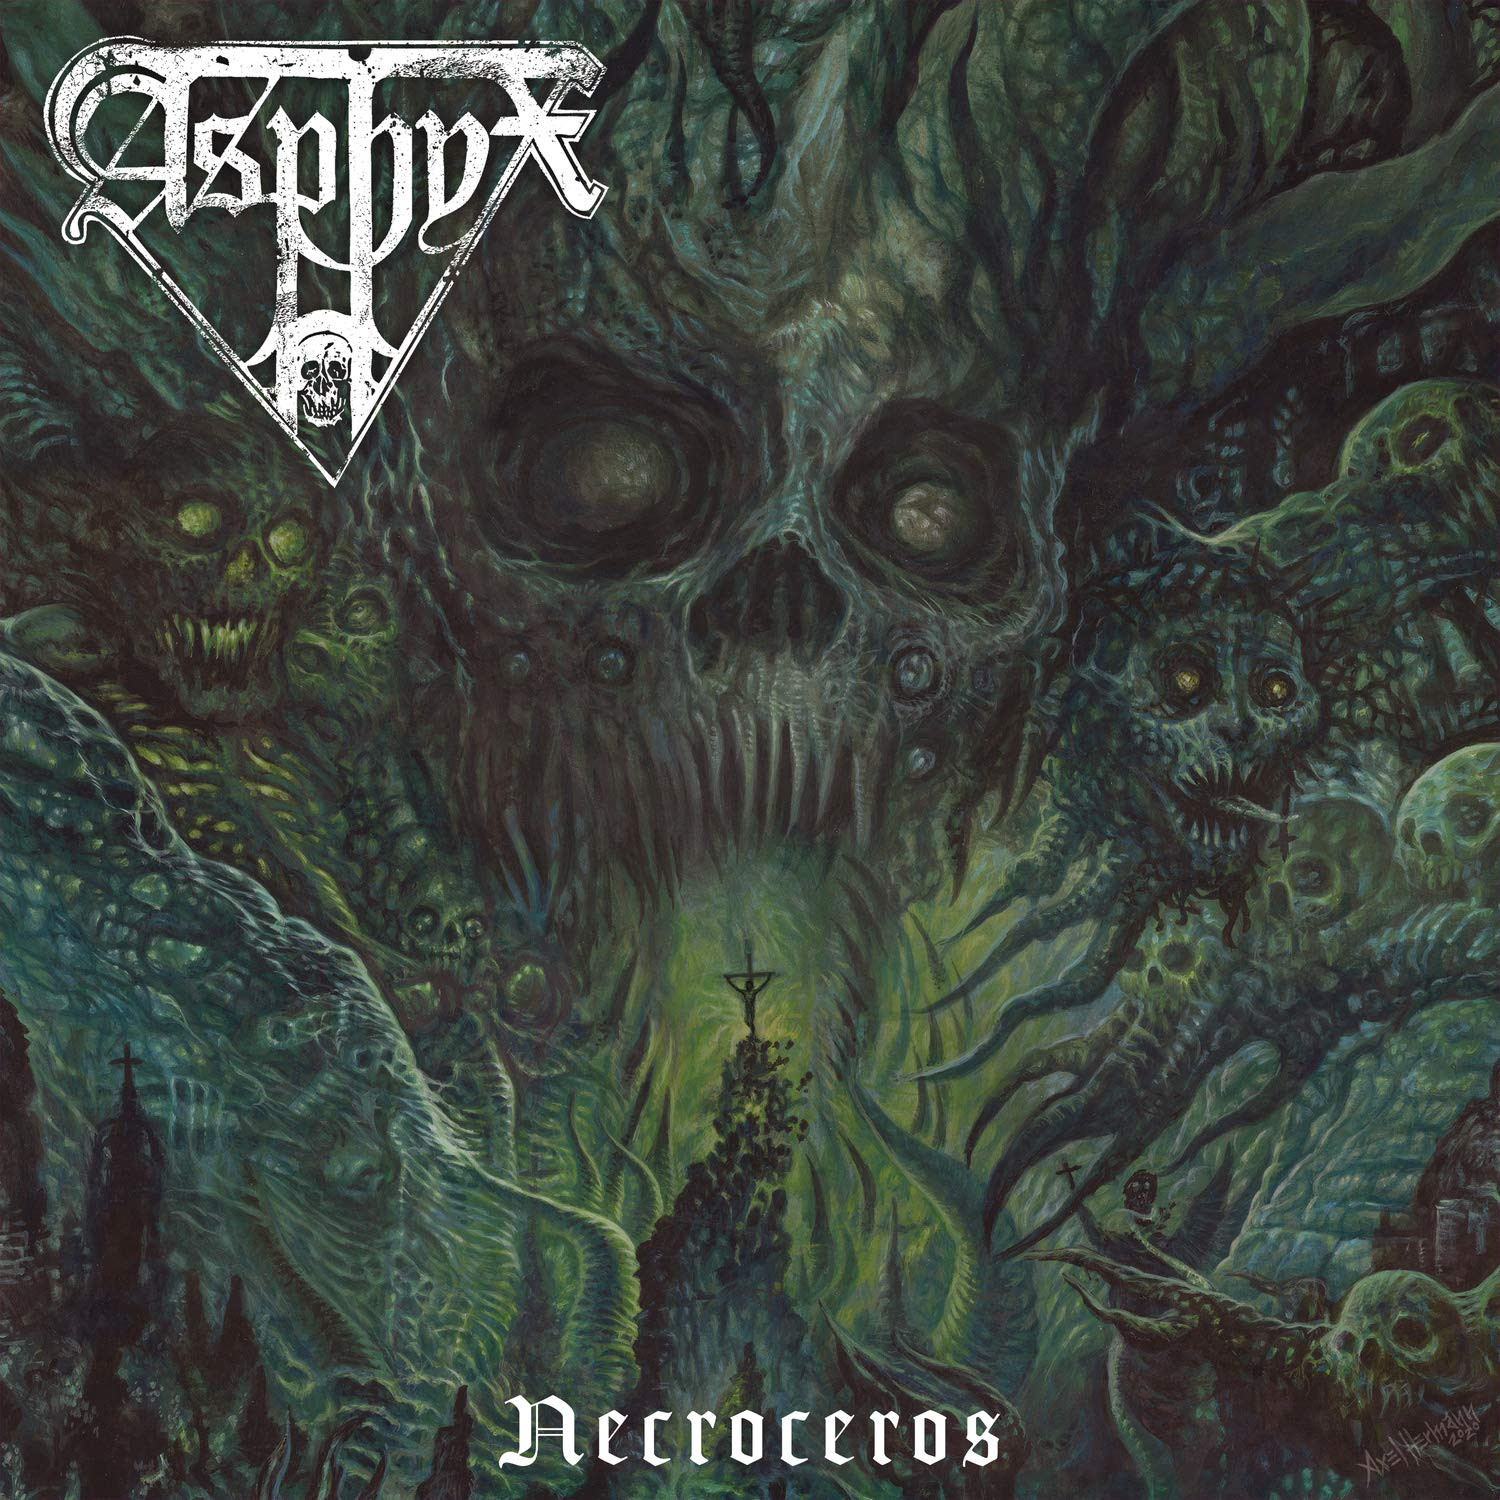 Asphyx - Necroceros (Ltd. CD+DVD Mediabook)